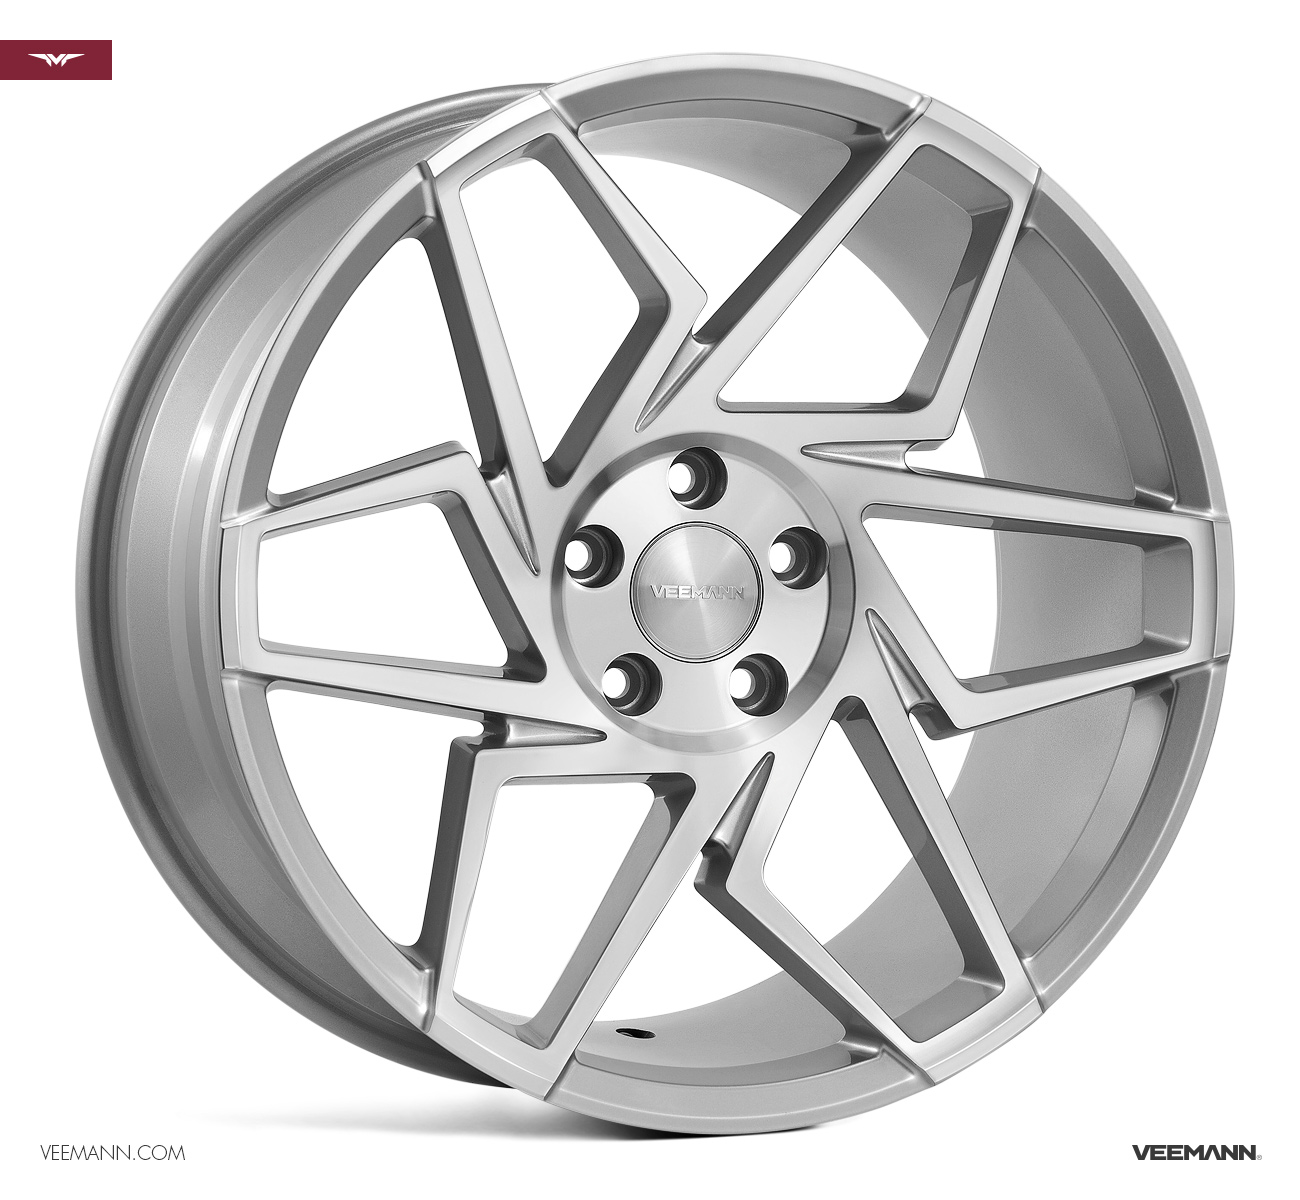 "NEW 19"" VEEMANN V-FS27R ALLOY WHEELS IN SILVER POL WITH WIDER 9.5"" REARS"